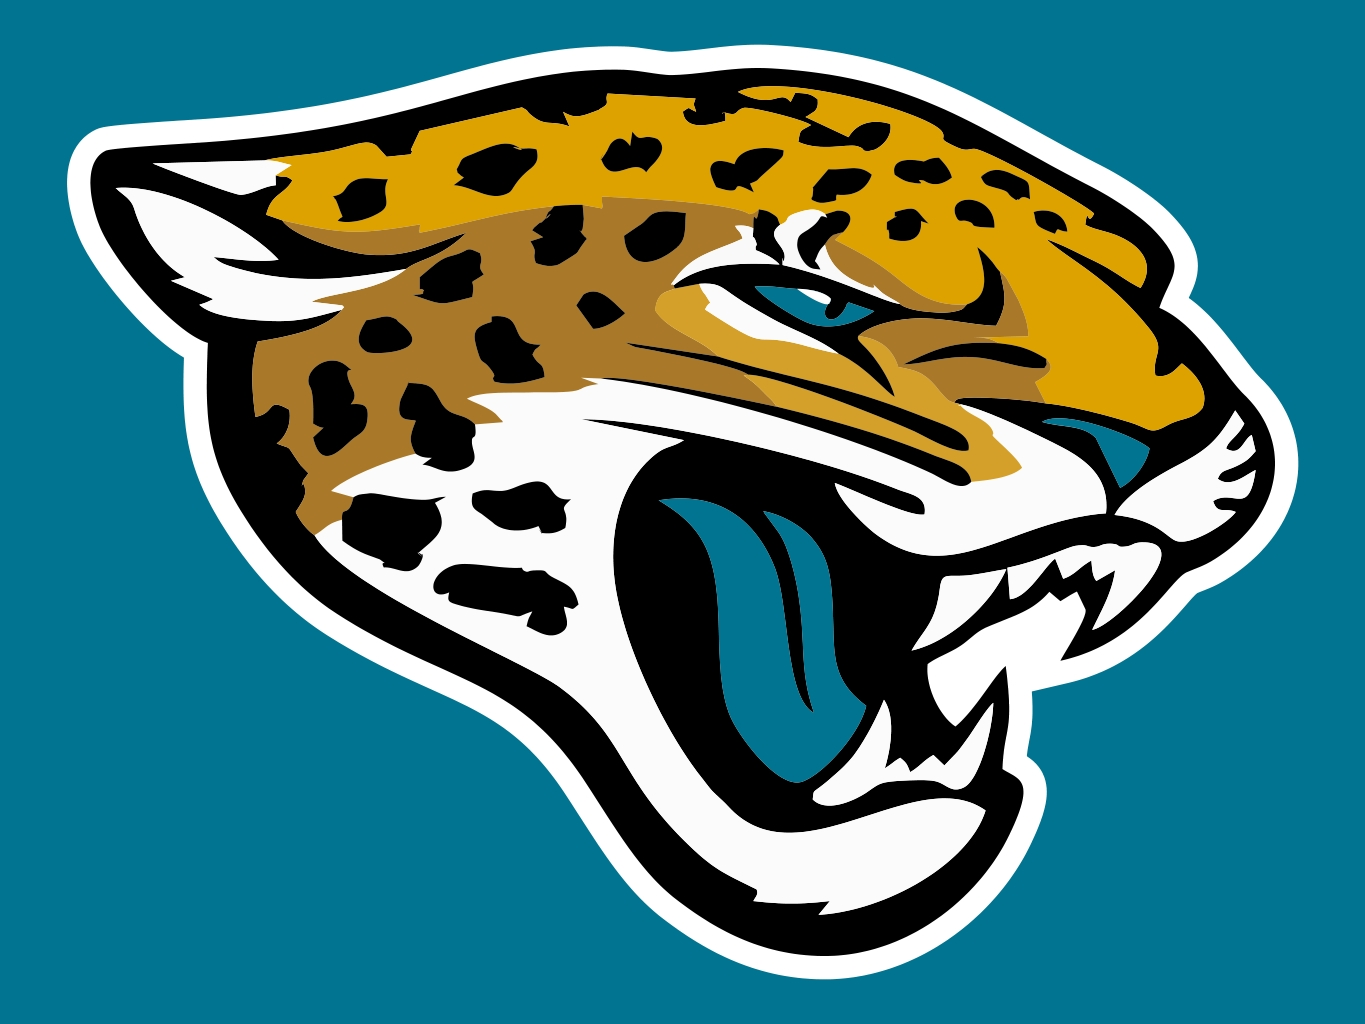 Pin Jacksonville Jaguars Desktop Wallpaperjpg 14 Jun 2012 1128 21m on 1365x1024